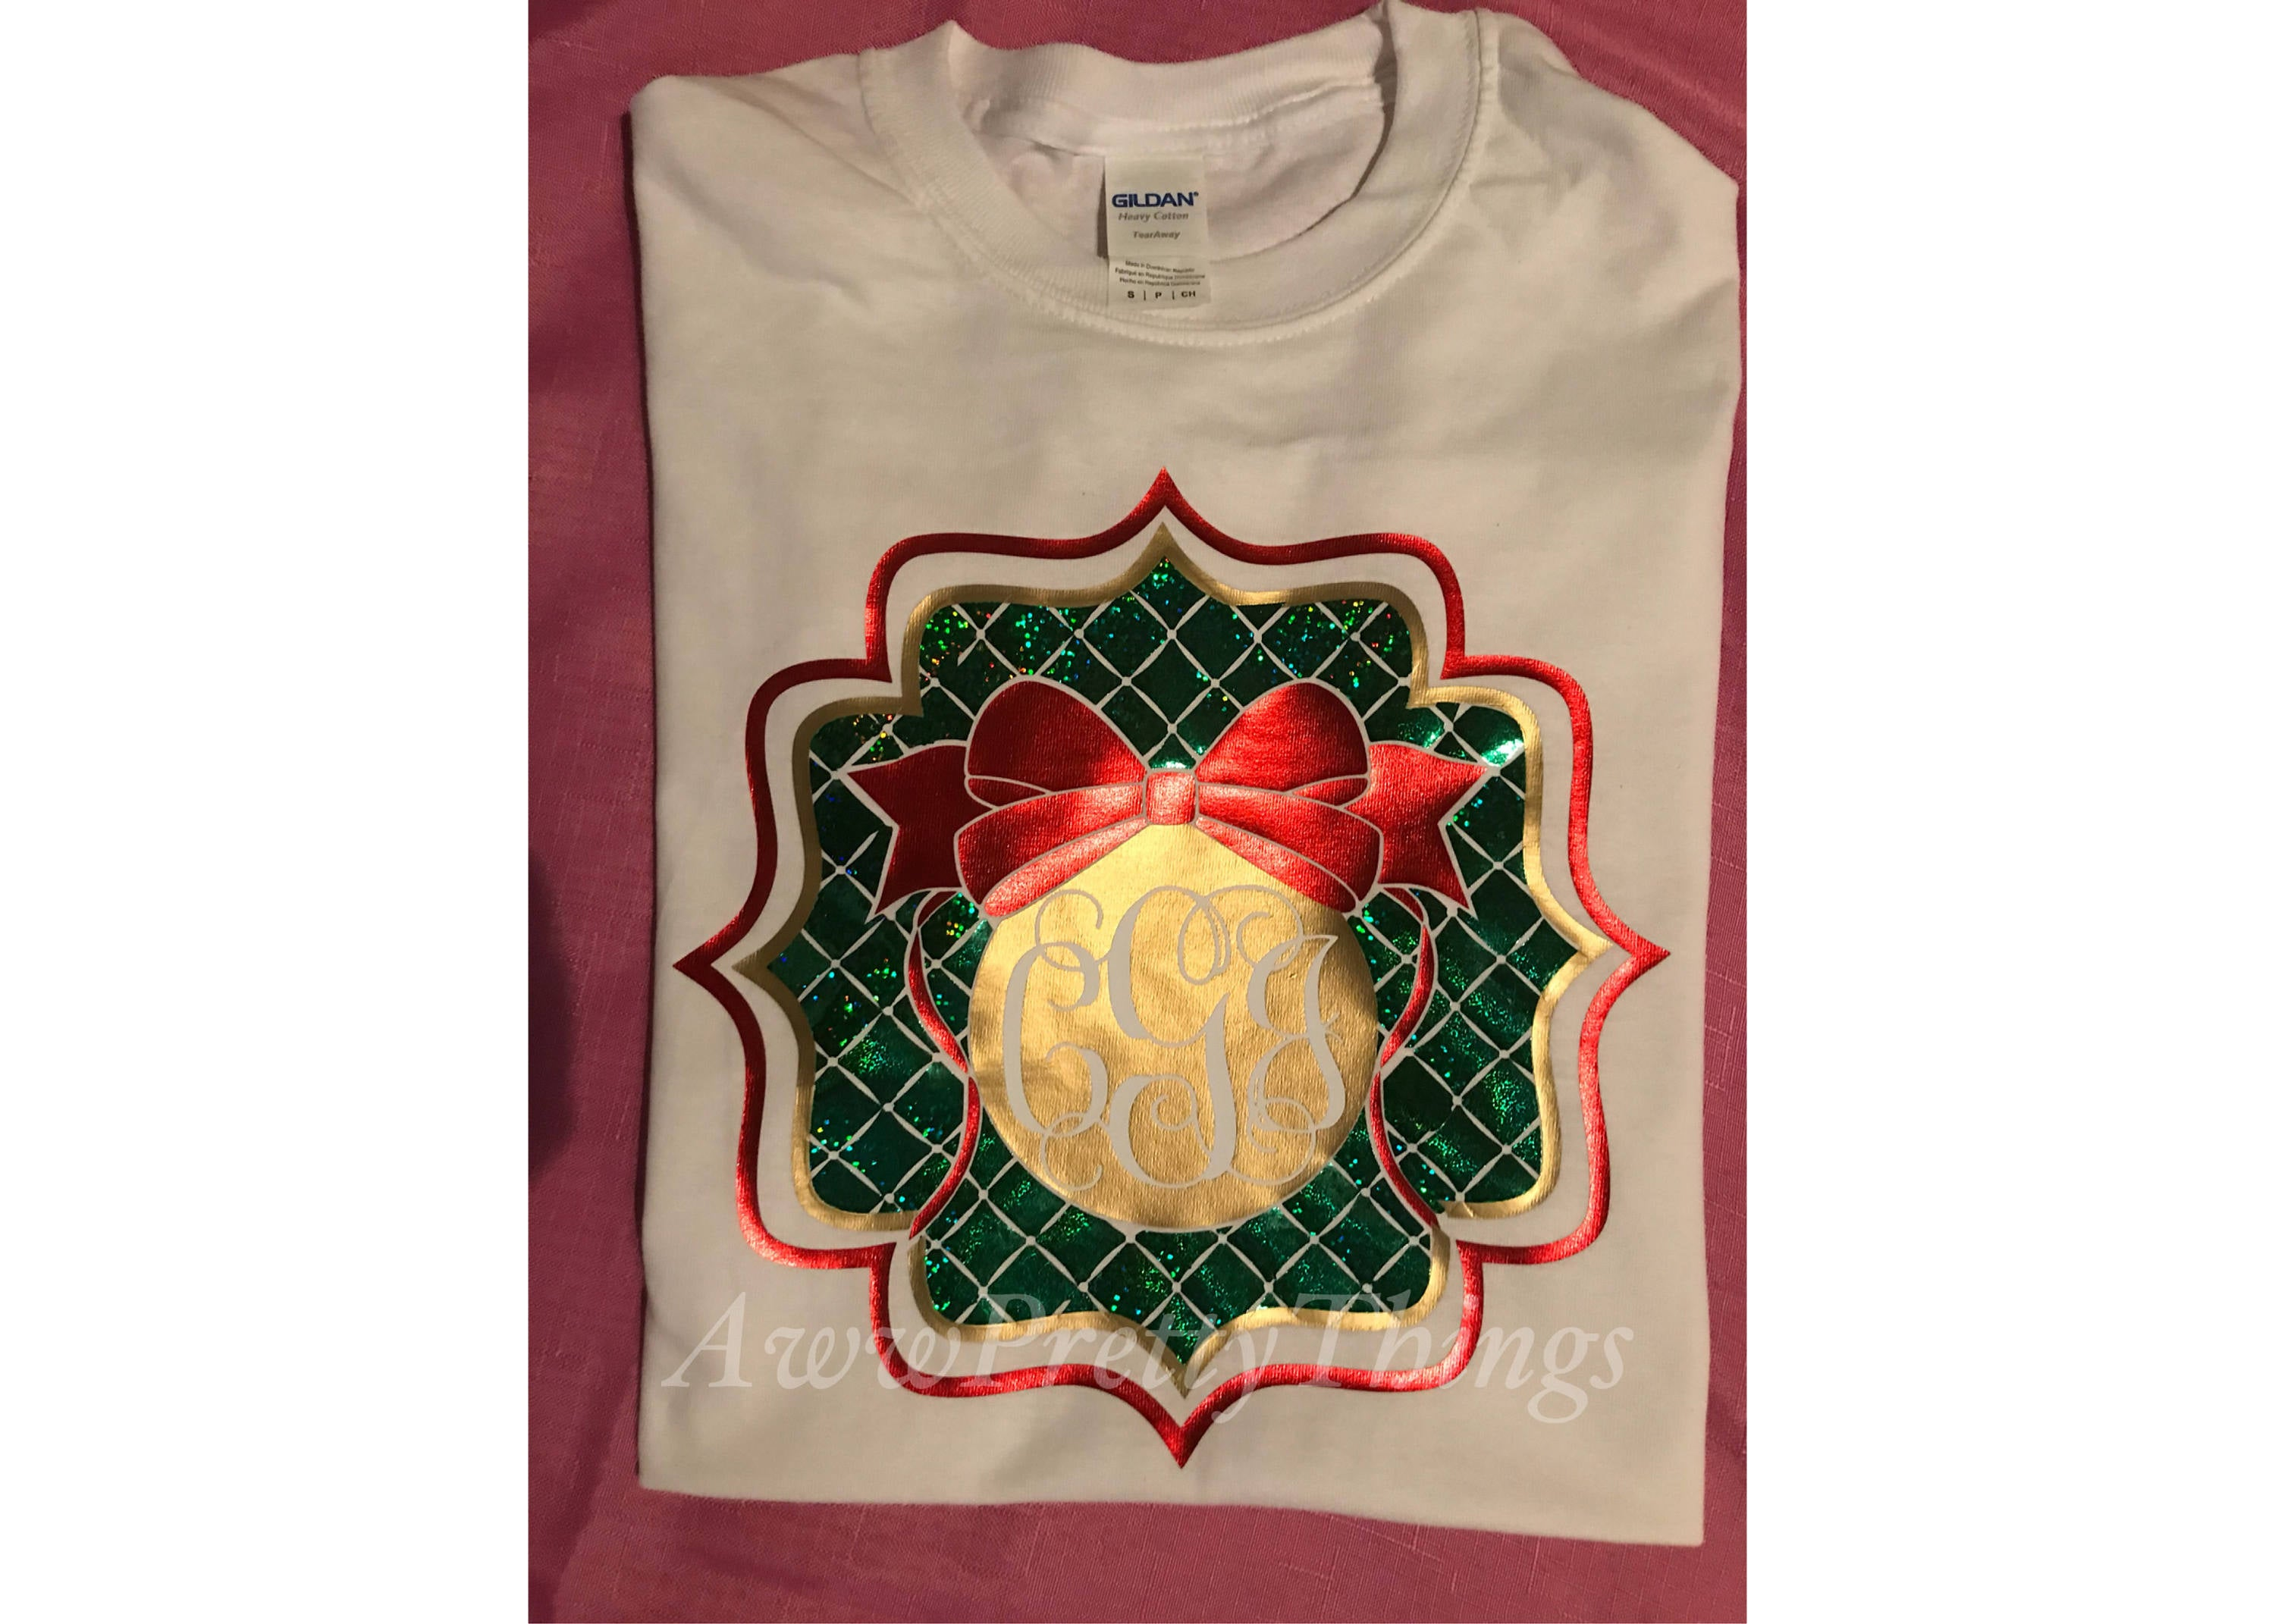 Christmas Shirt Long Sleeve Christmas Monogram Shirt Holiday Shirt Monogram Long Sleeve Monogramigger Giliday Shirt Custom Shirt